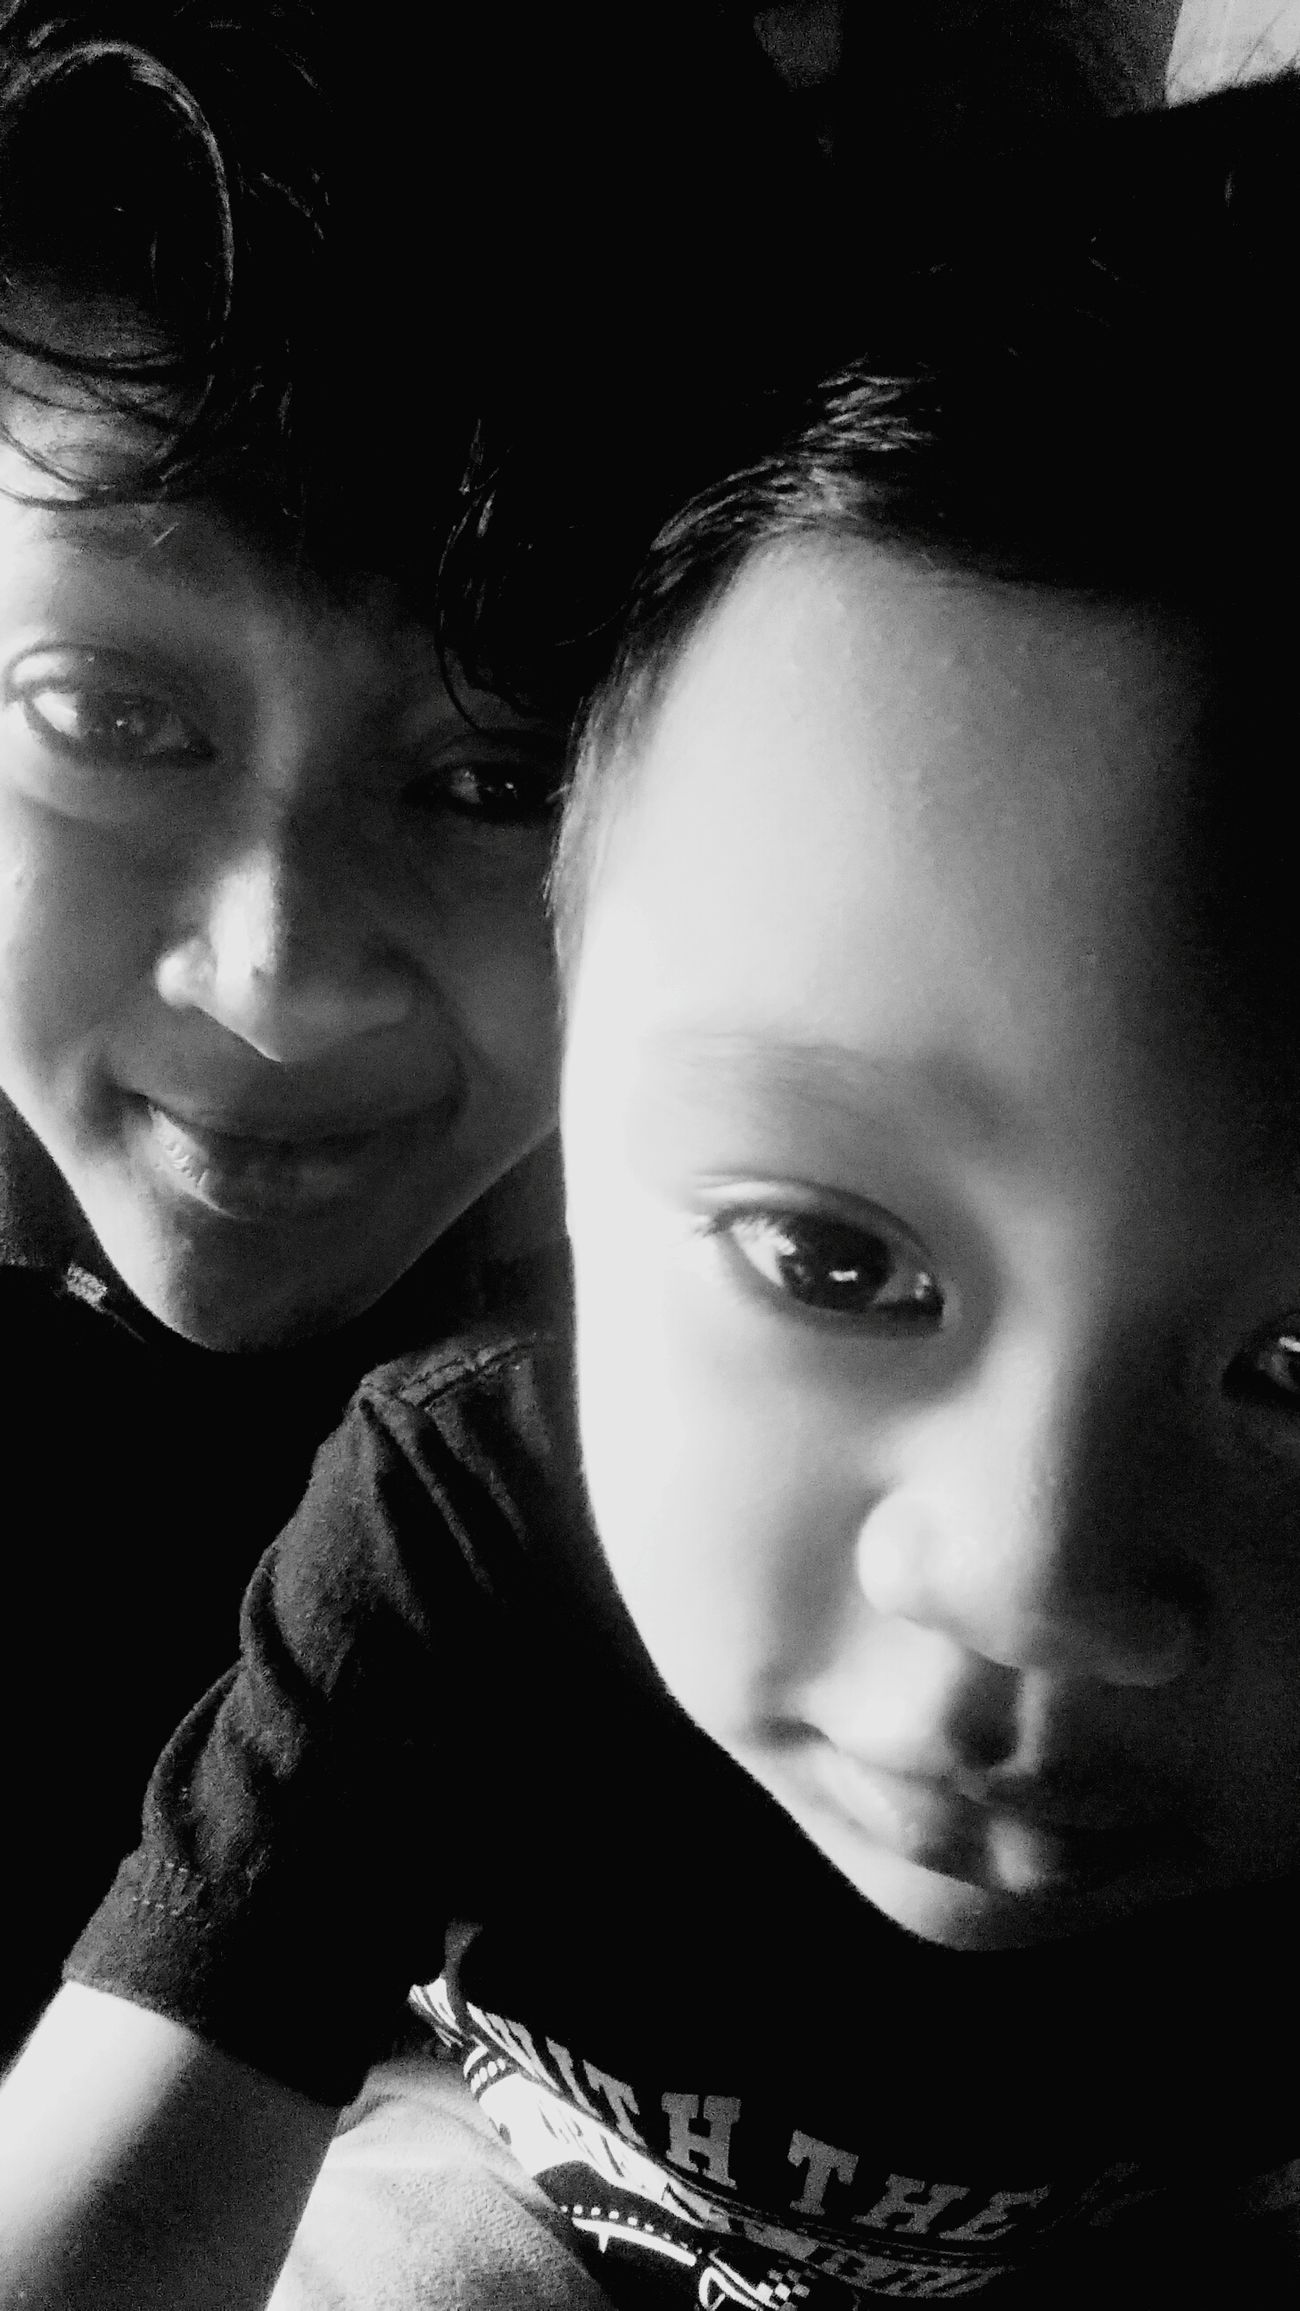 Babyboy Boys Blackandwhite Blackandwhite Photography Mom And Son Mommy & Baby Time <3 Enjoying The Moment Photokeyent Happy Time Enjoying Life